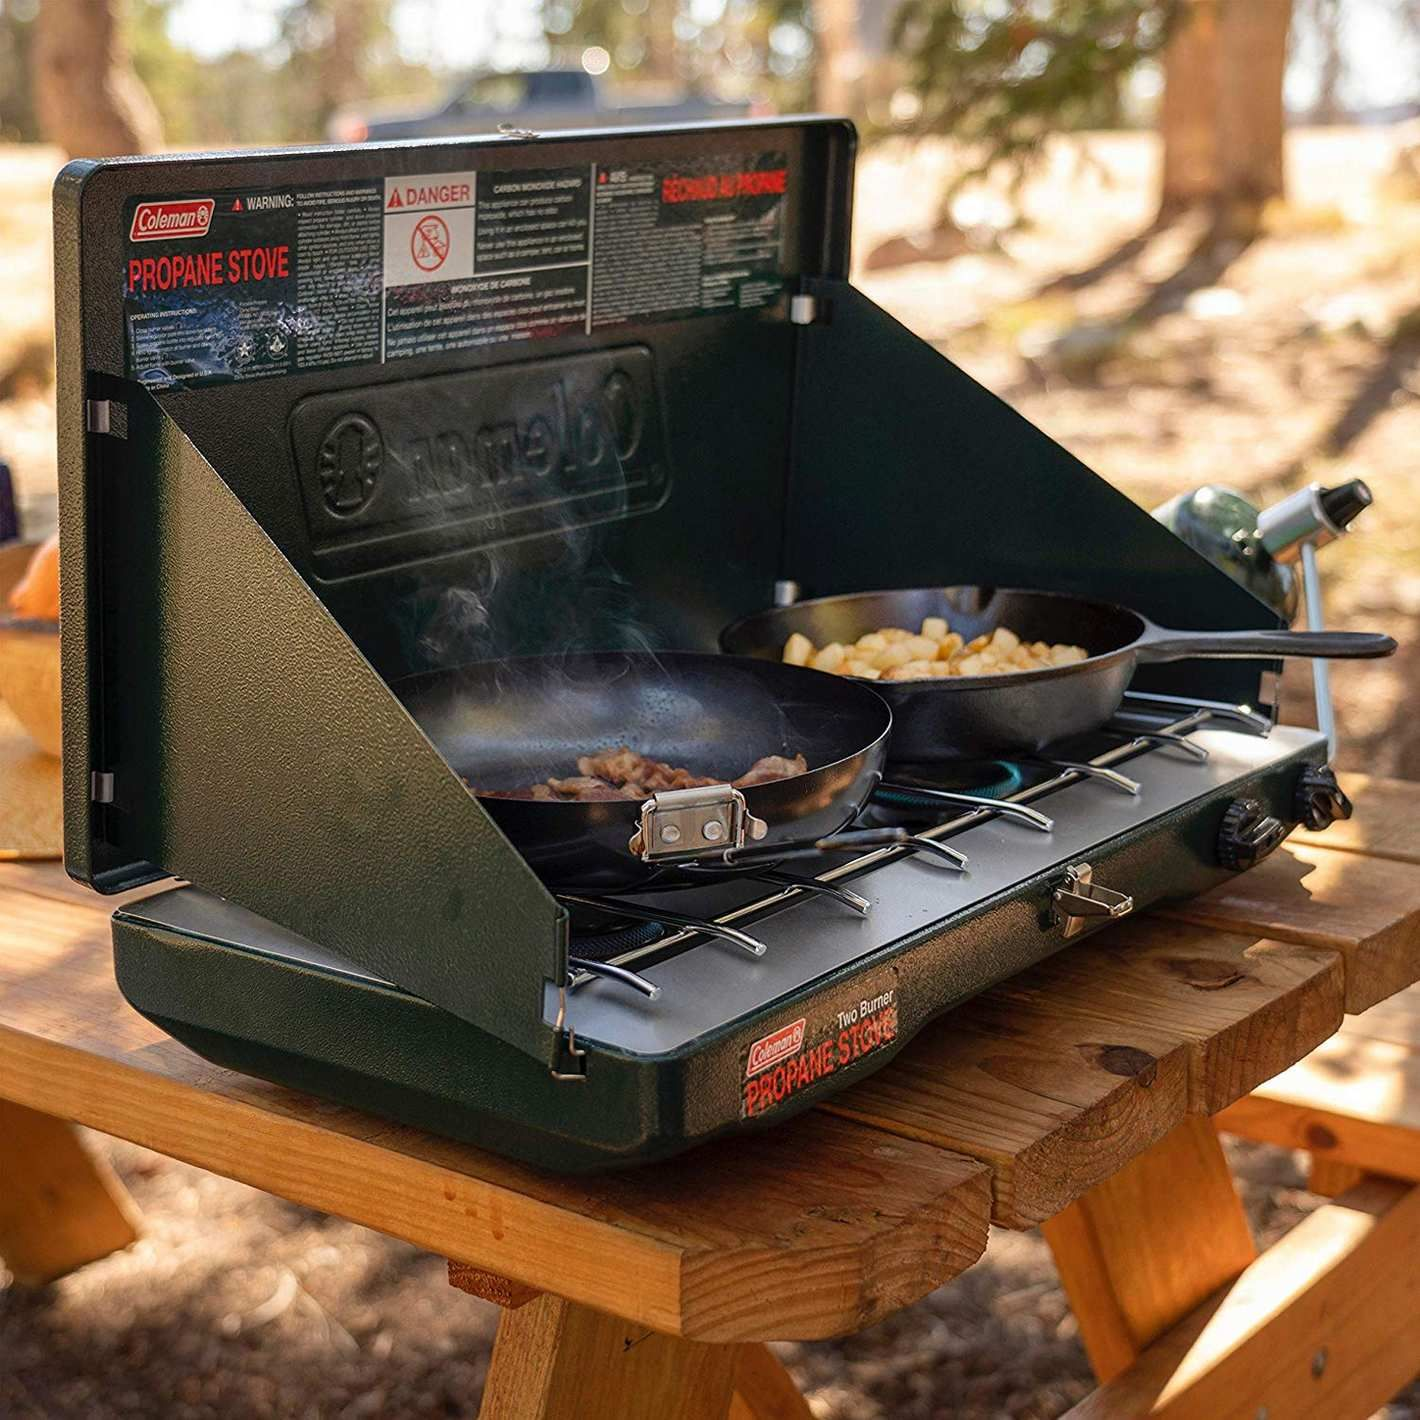 The Best Camping Stoves on Amazon, According to Hyperenthusiastic Reviewers